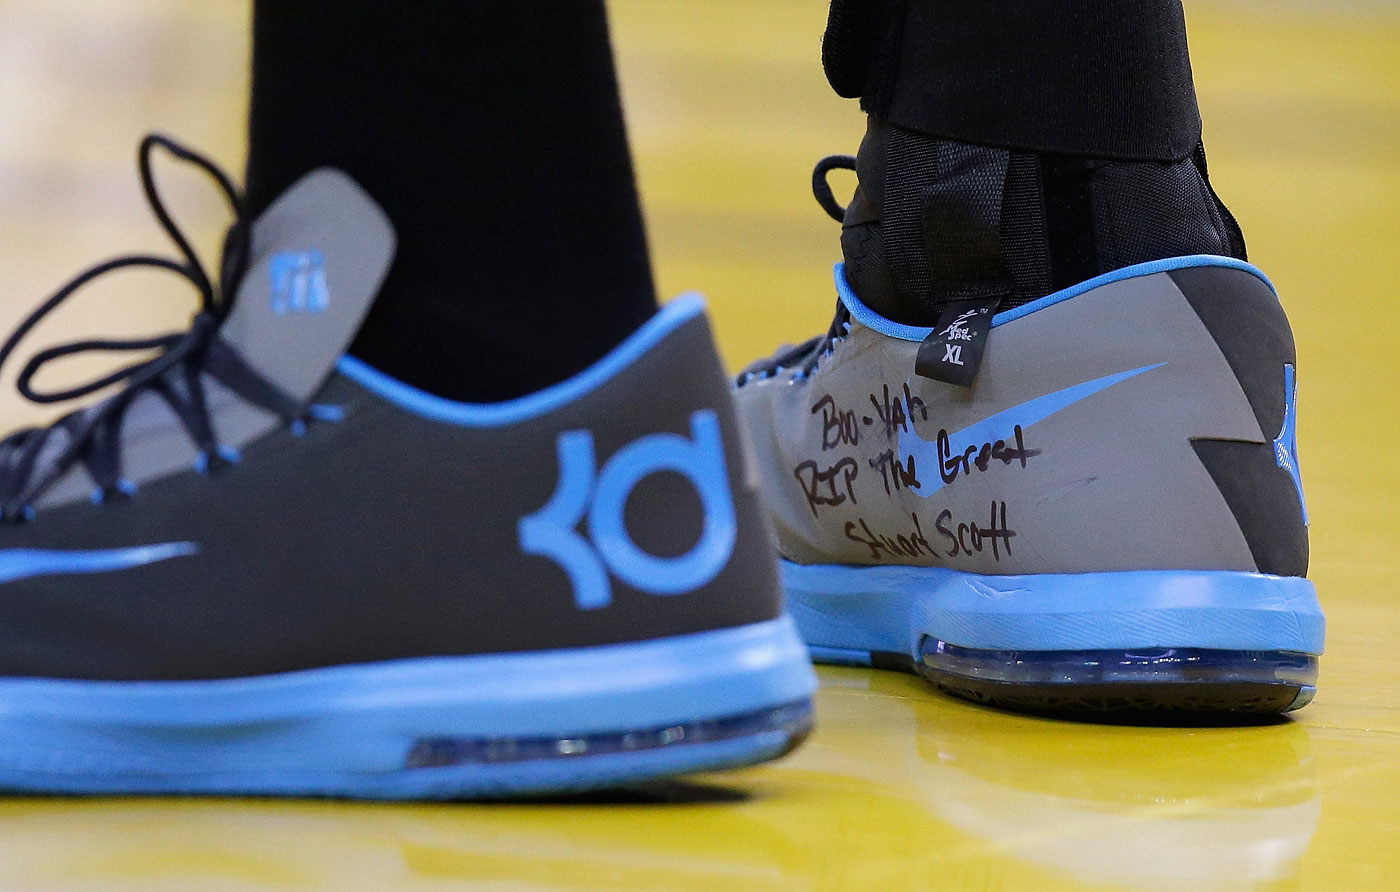 Kevin Durant pays tribute to Stuart Scott during the Oklahoma City Thunder game against the Golden State Warriors at ORACLE Arena on Jan. 5, 2015 in Oakland, Calif.